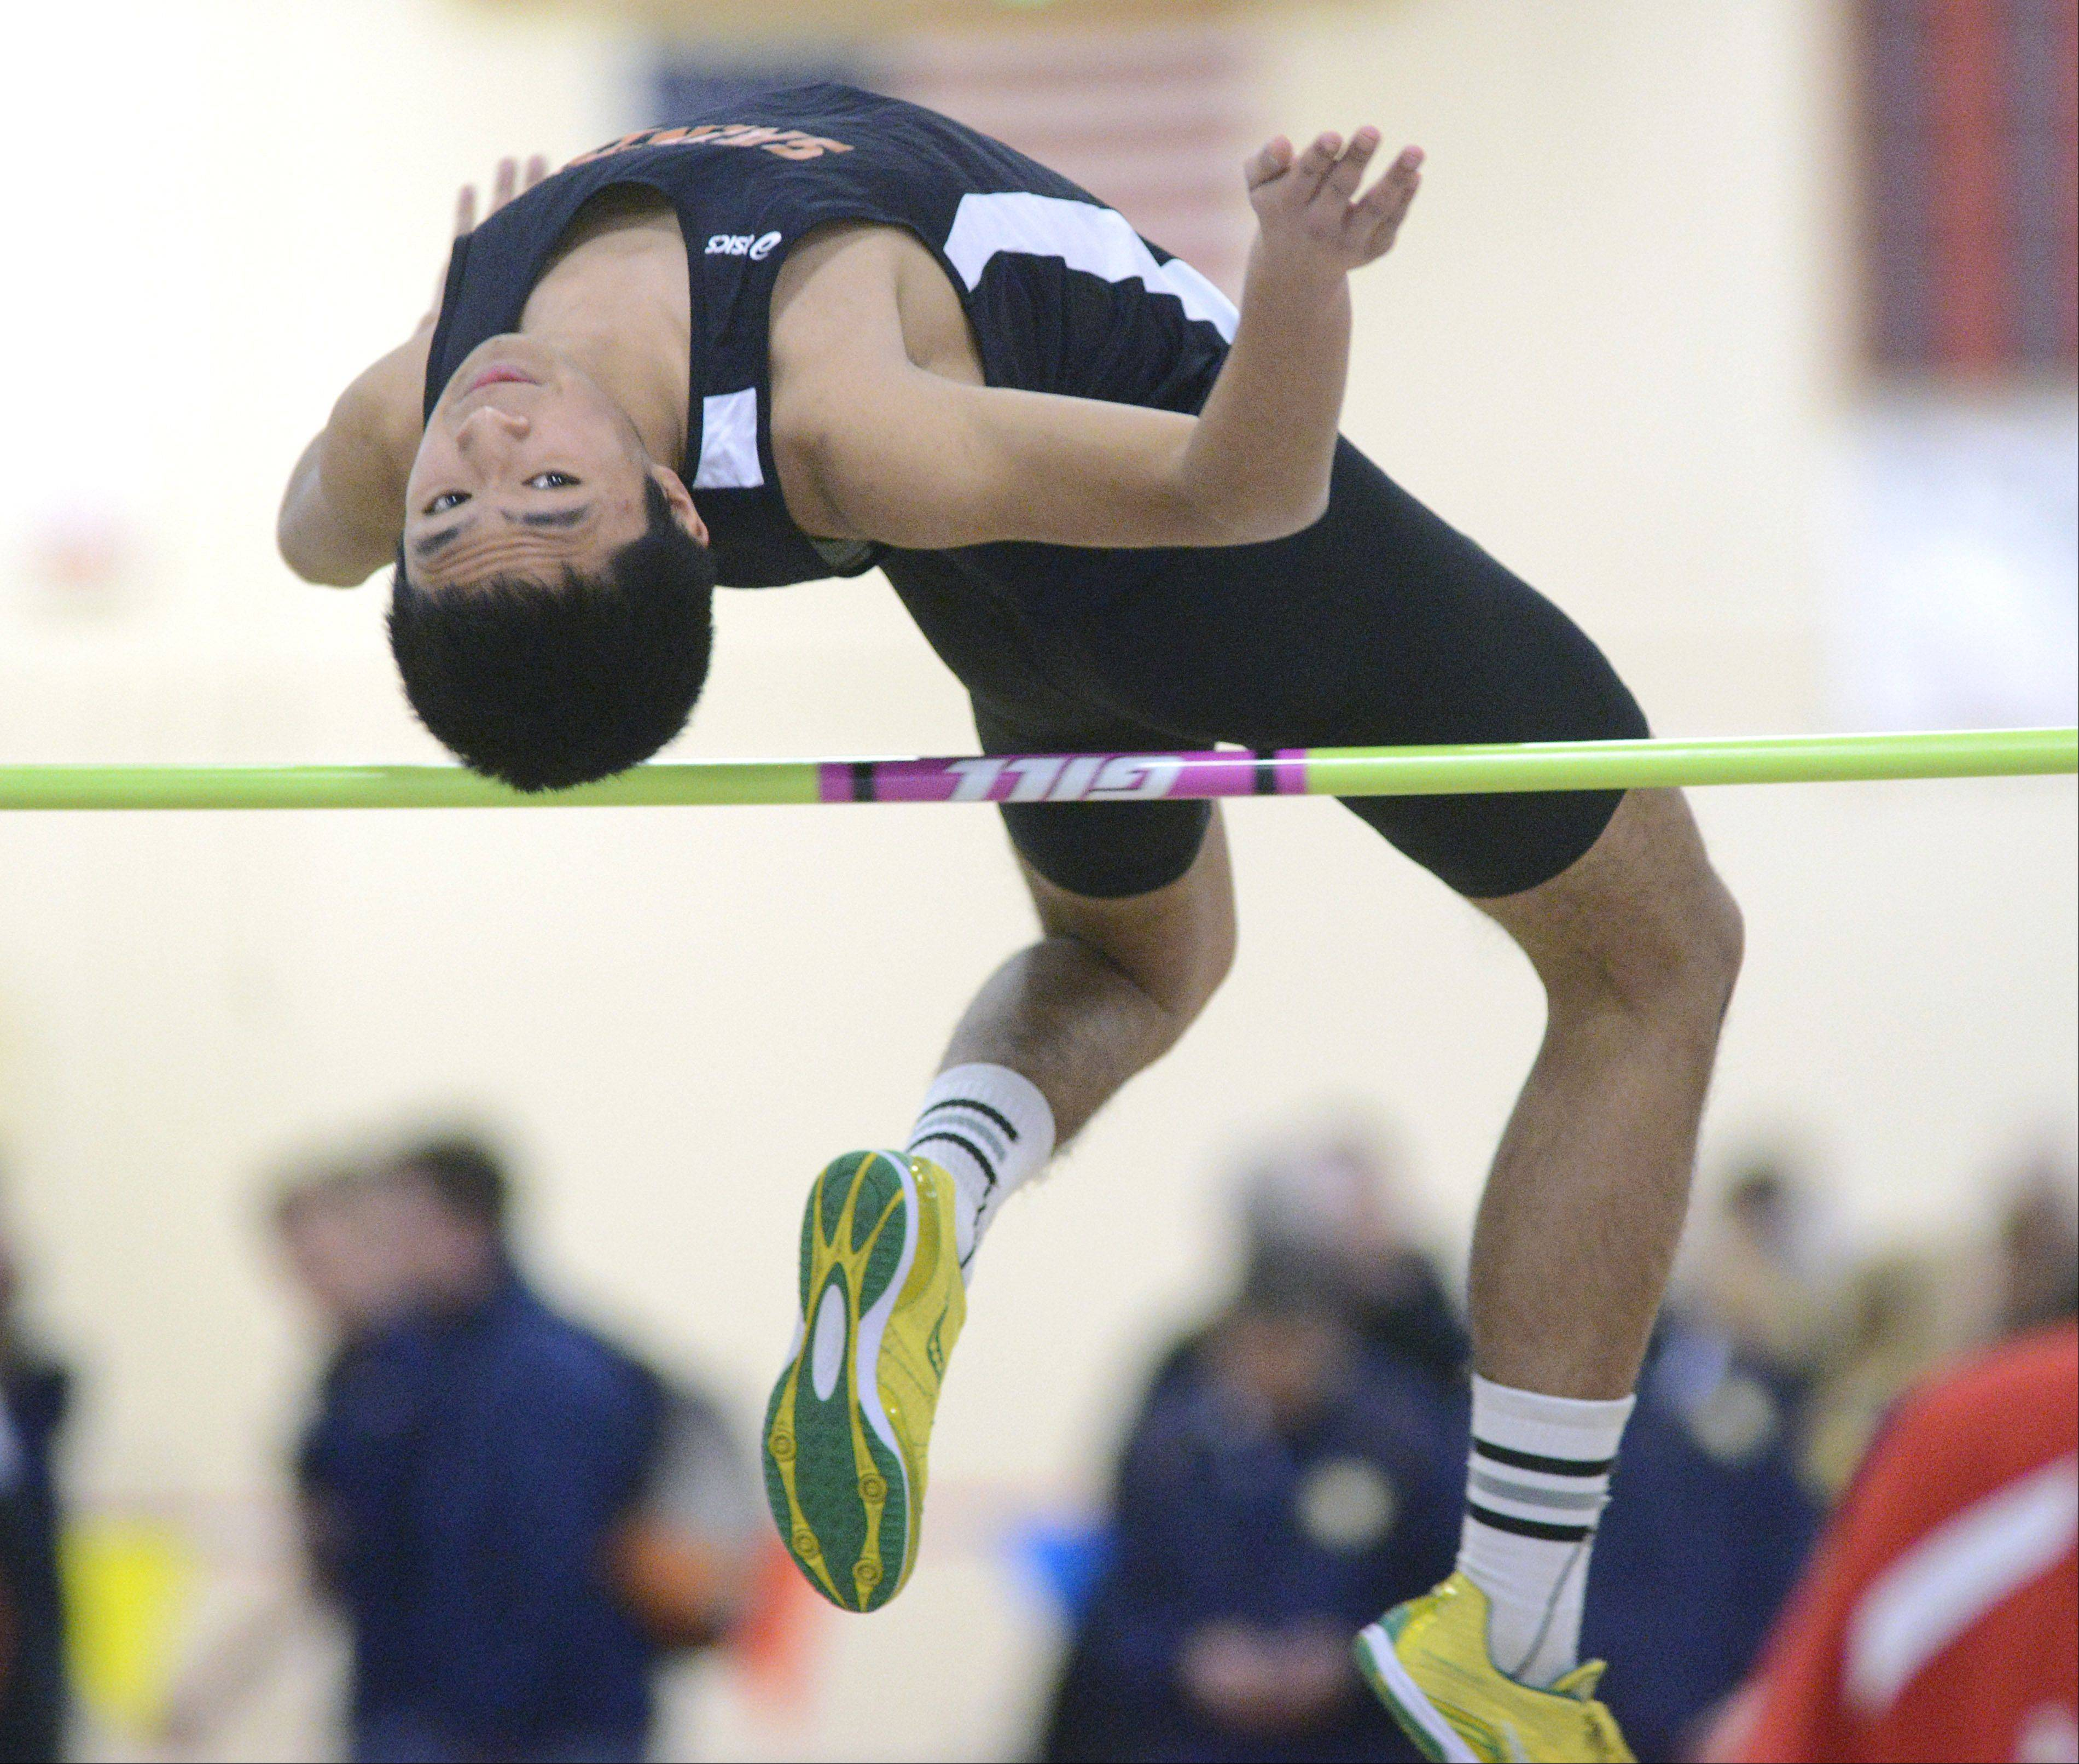 St. Charles East's Ryan Memije competes in the high jump finals at the Upstate Eight Conference in Batavia on Saturday.